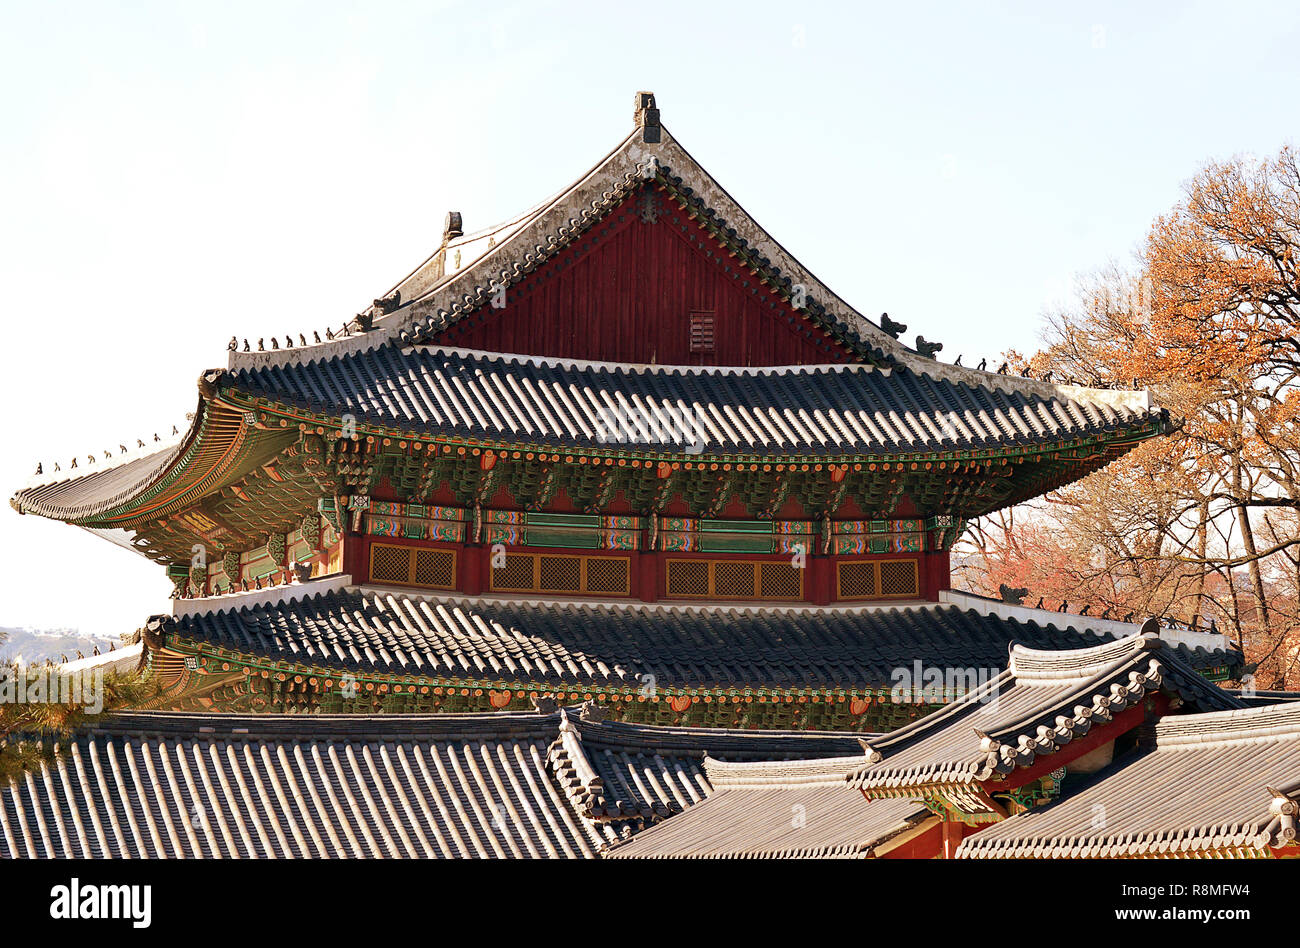 Hipped roofs, tiles, painted decorations, and hermits, monks and monsters on the roof as guardians, Korean palatial architecture at Changdeokgung - Stock Image